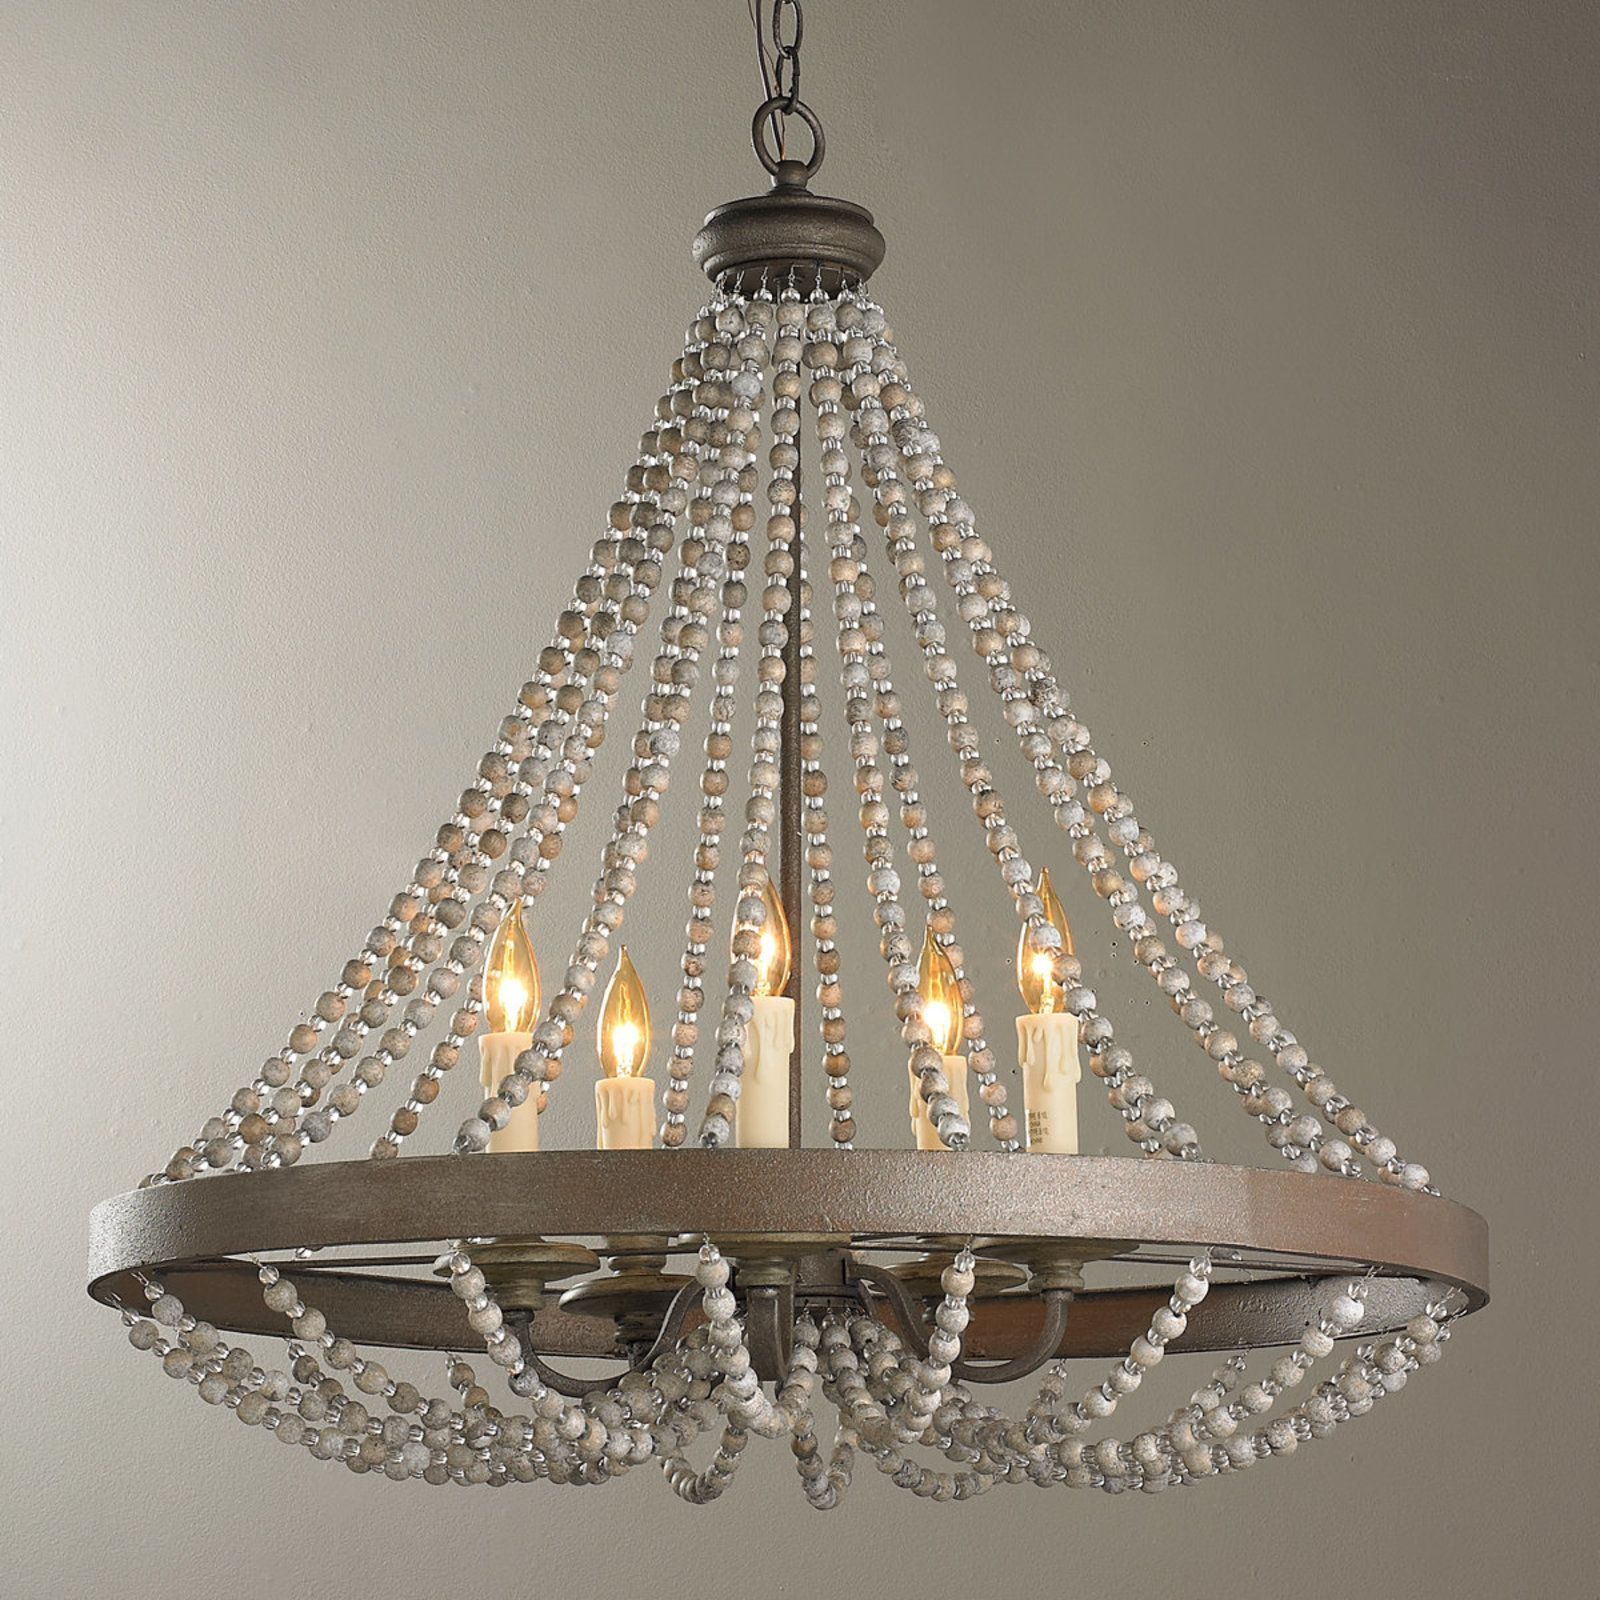 Rustic French Country Beaded Chandelier Lighting 2018 In